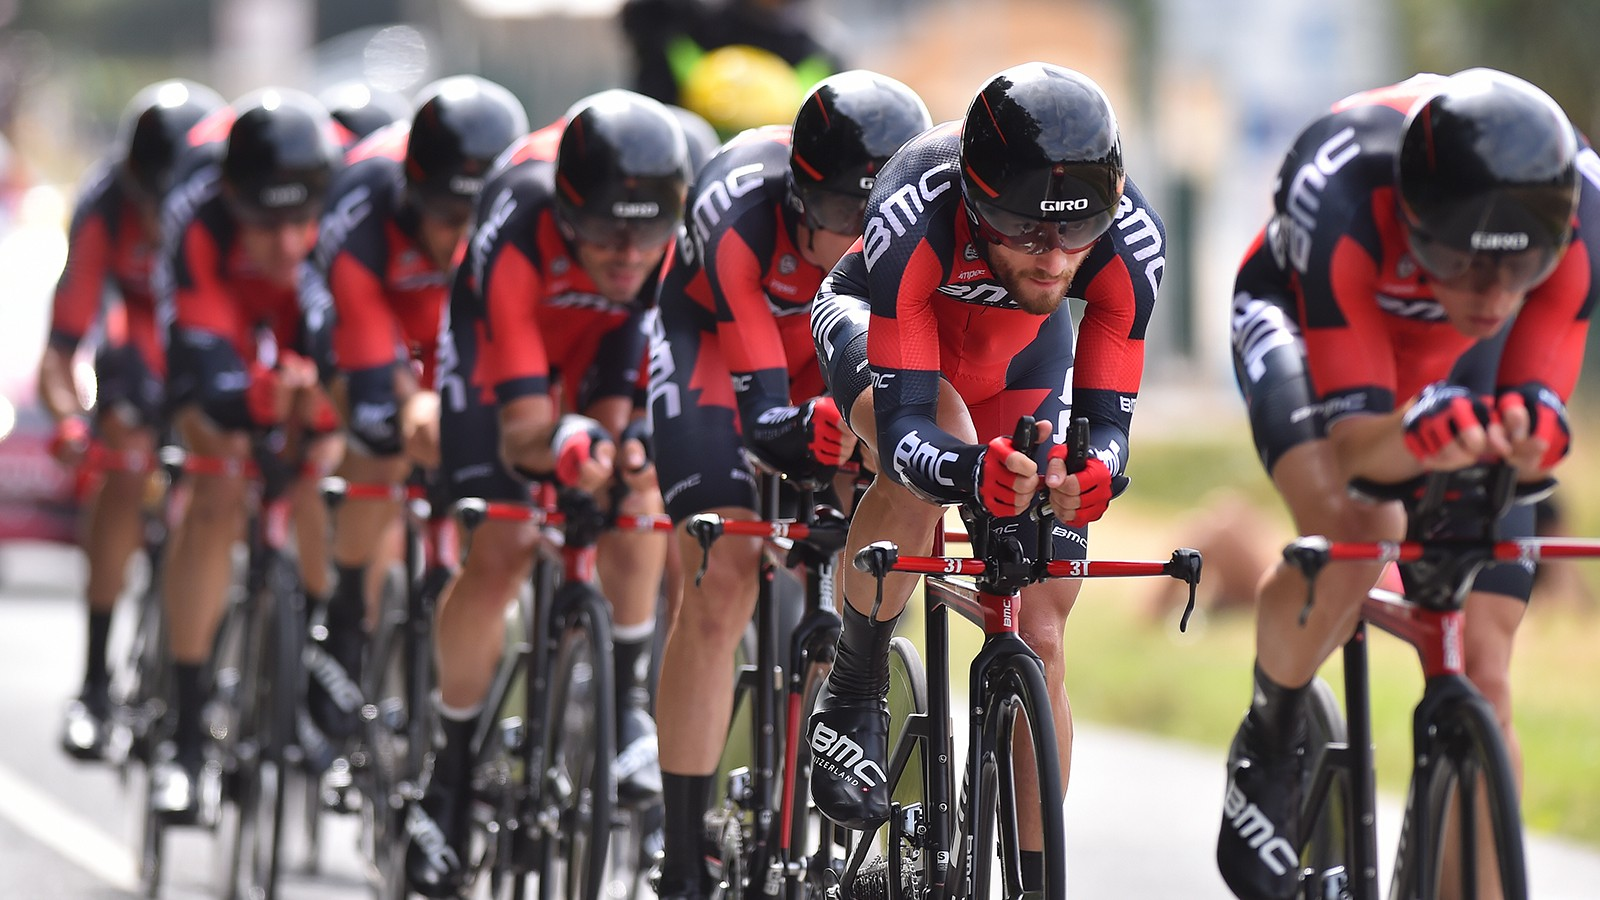 BMC won the team time trial at the 2015 Tour de France, nearly putting Tejay van Garderen into the maillot jaune